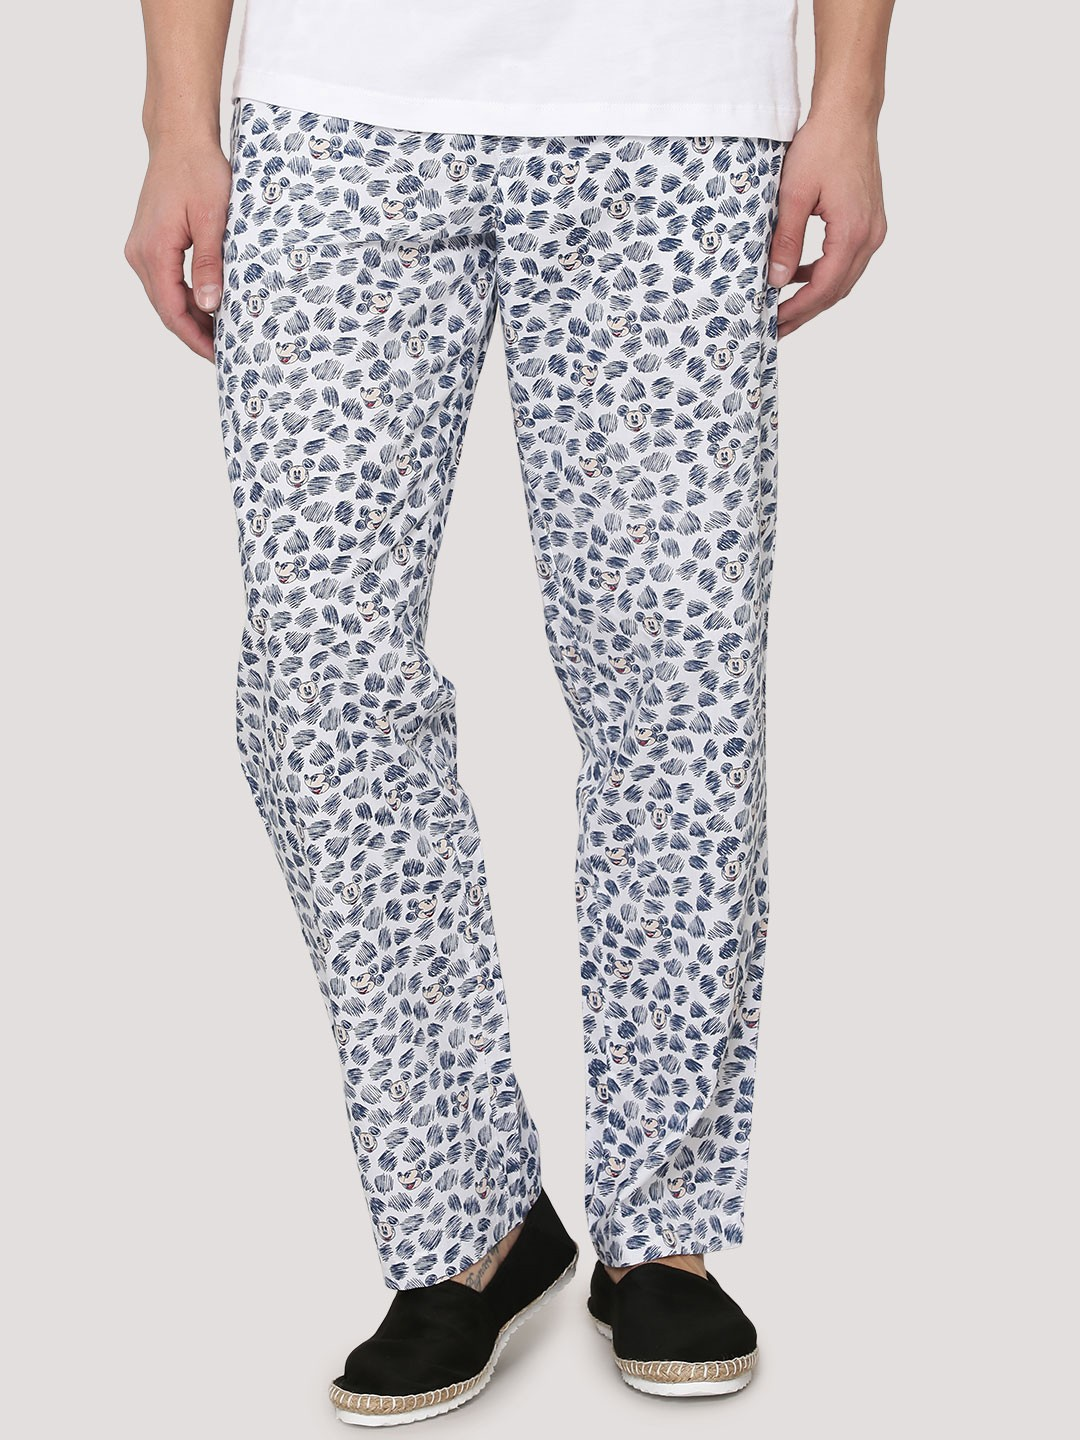 Get Least price of Mickey Collection Pyjamas at MyLeastPrice